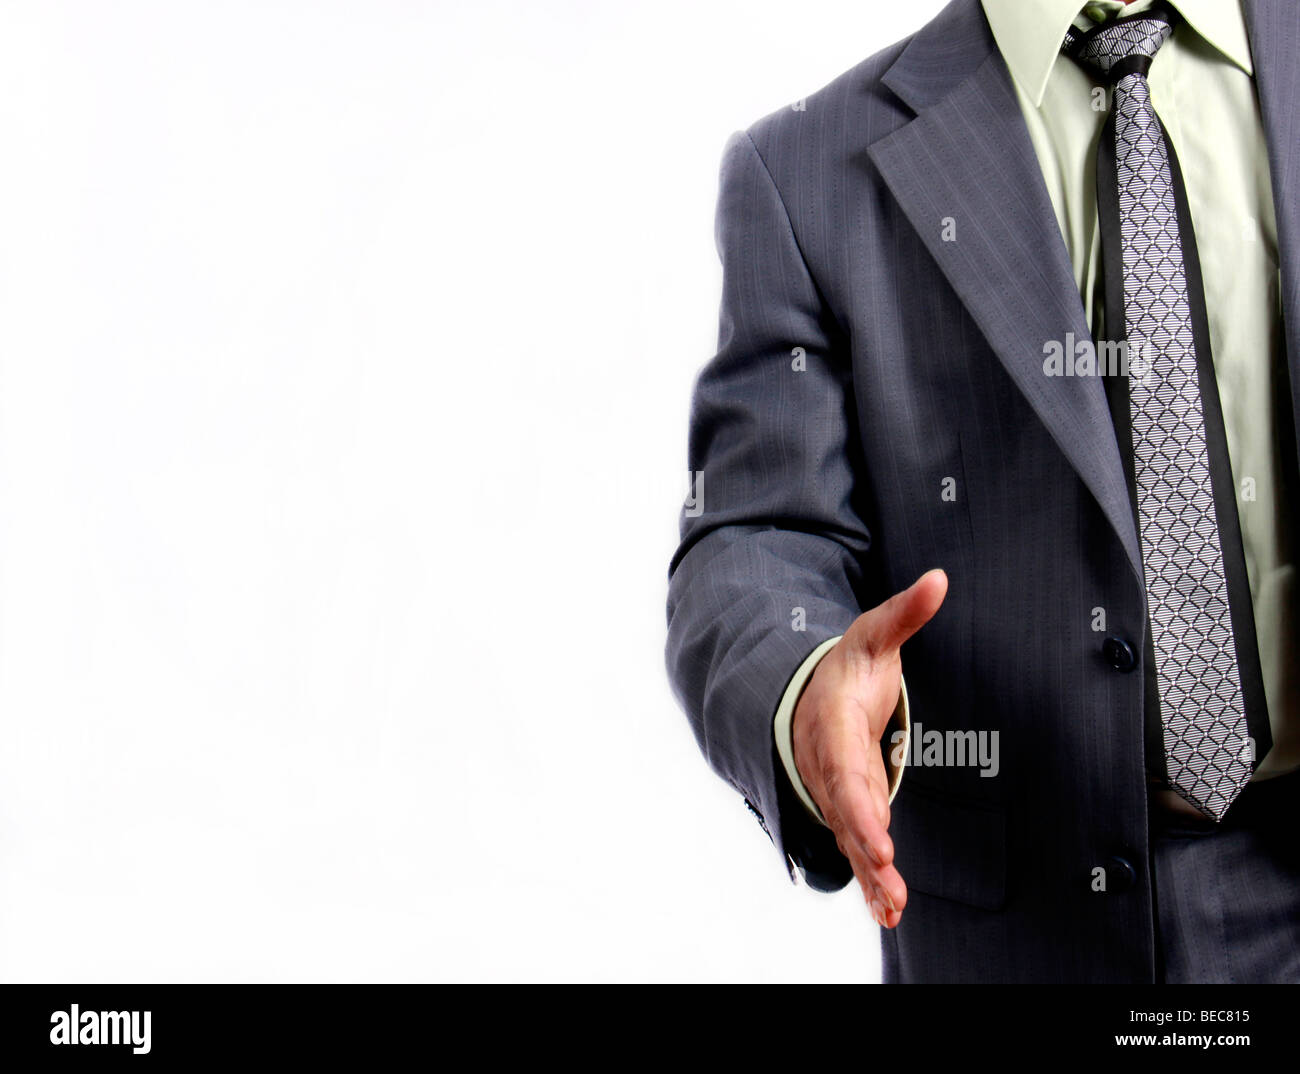 Businessman handshake welcoming - Stock Image